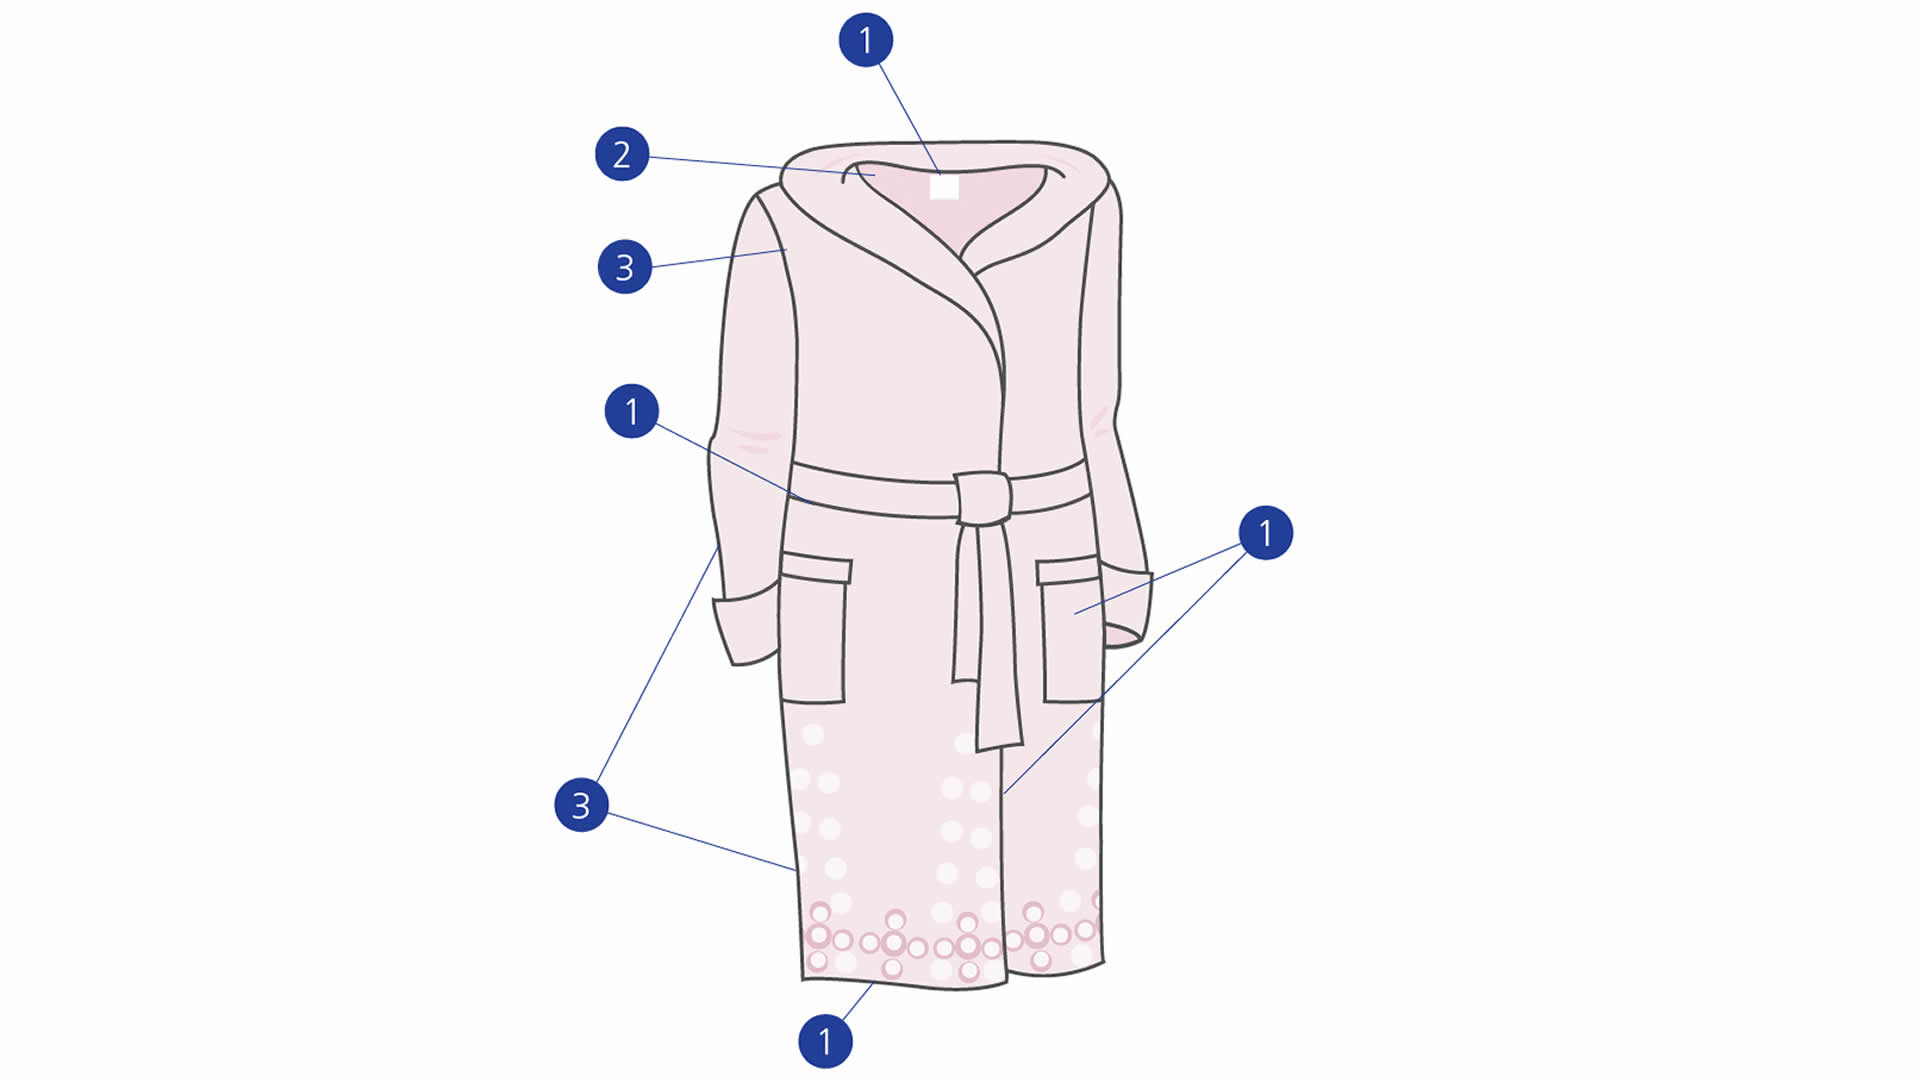 Ladieswear Bathrobes diagram